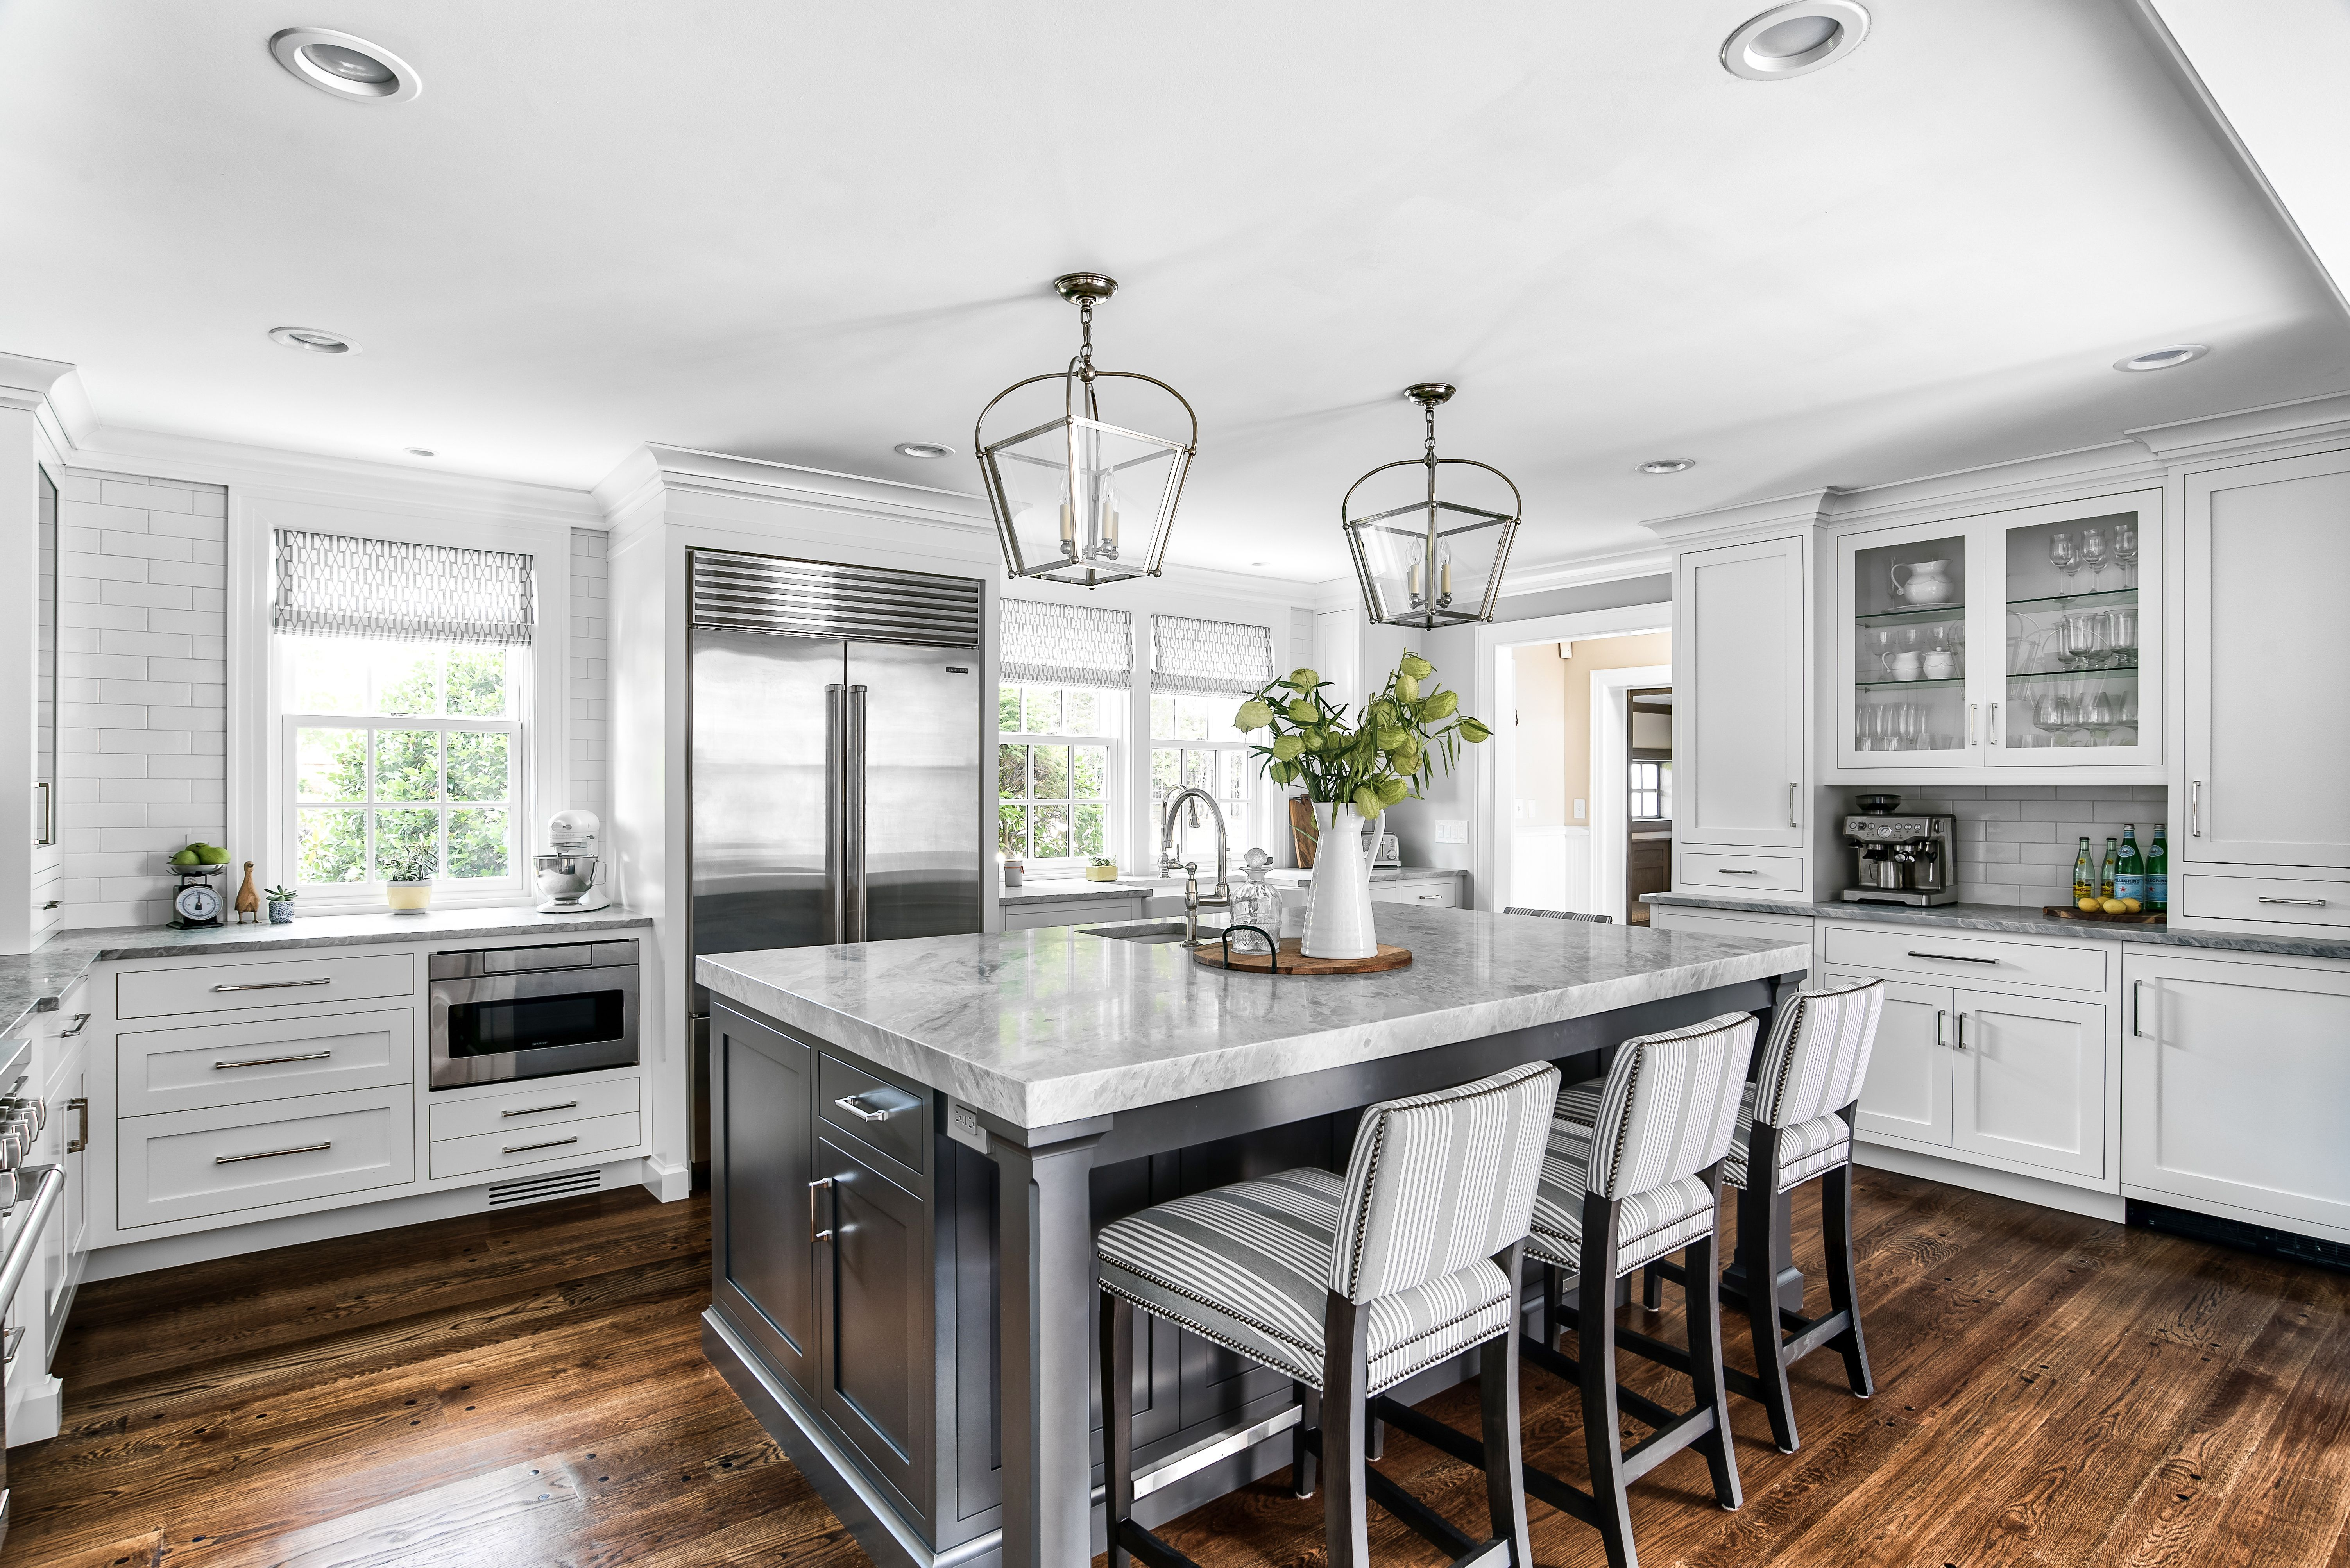 Pin by Stonington Cabinetry & Designs on Hudson Project ...